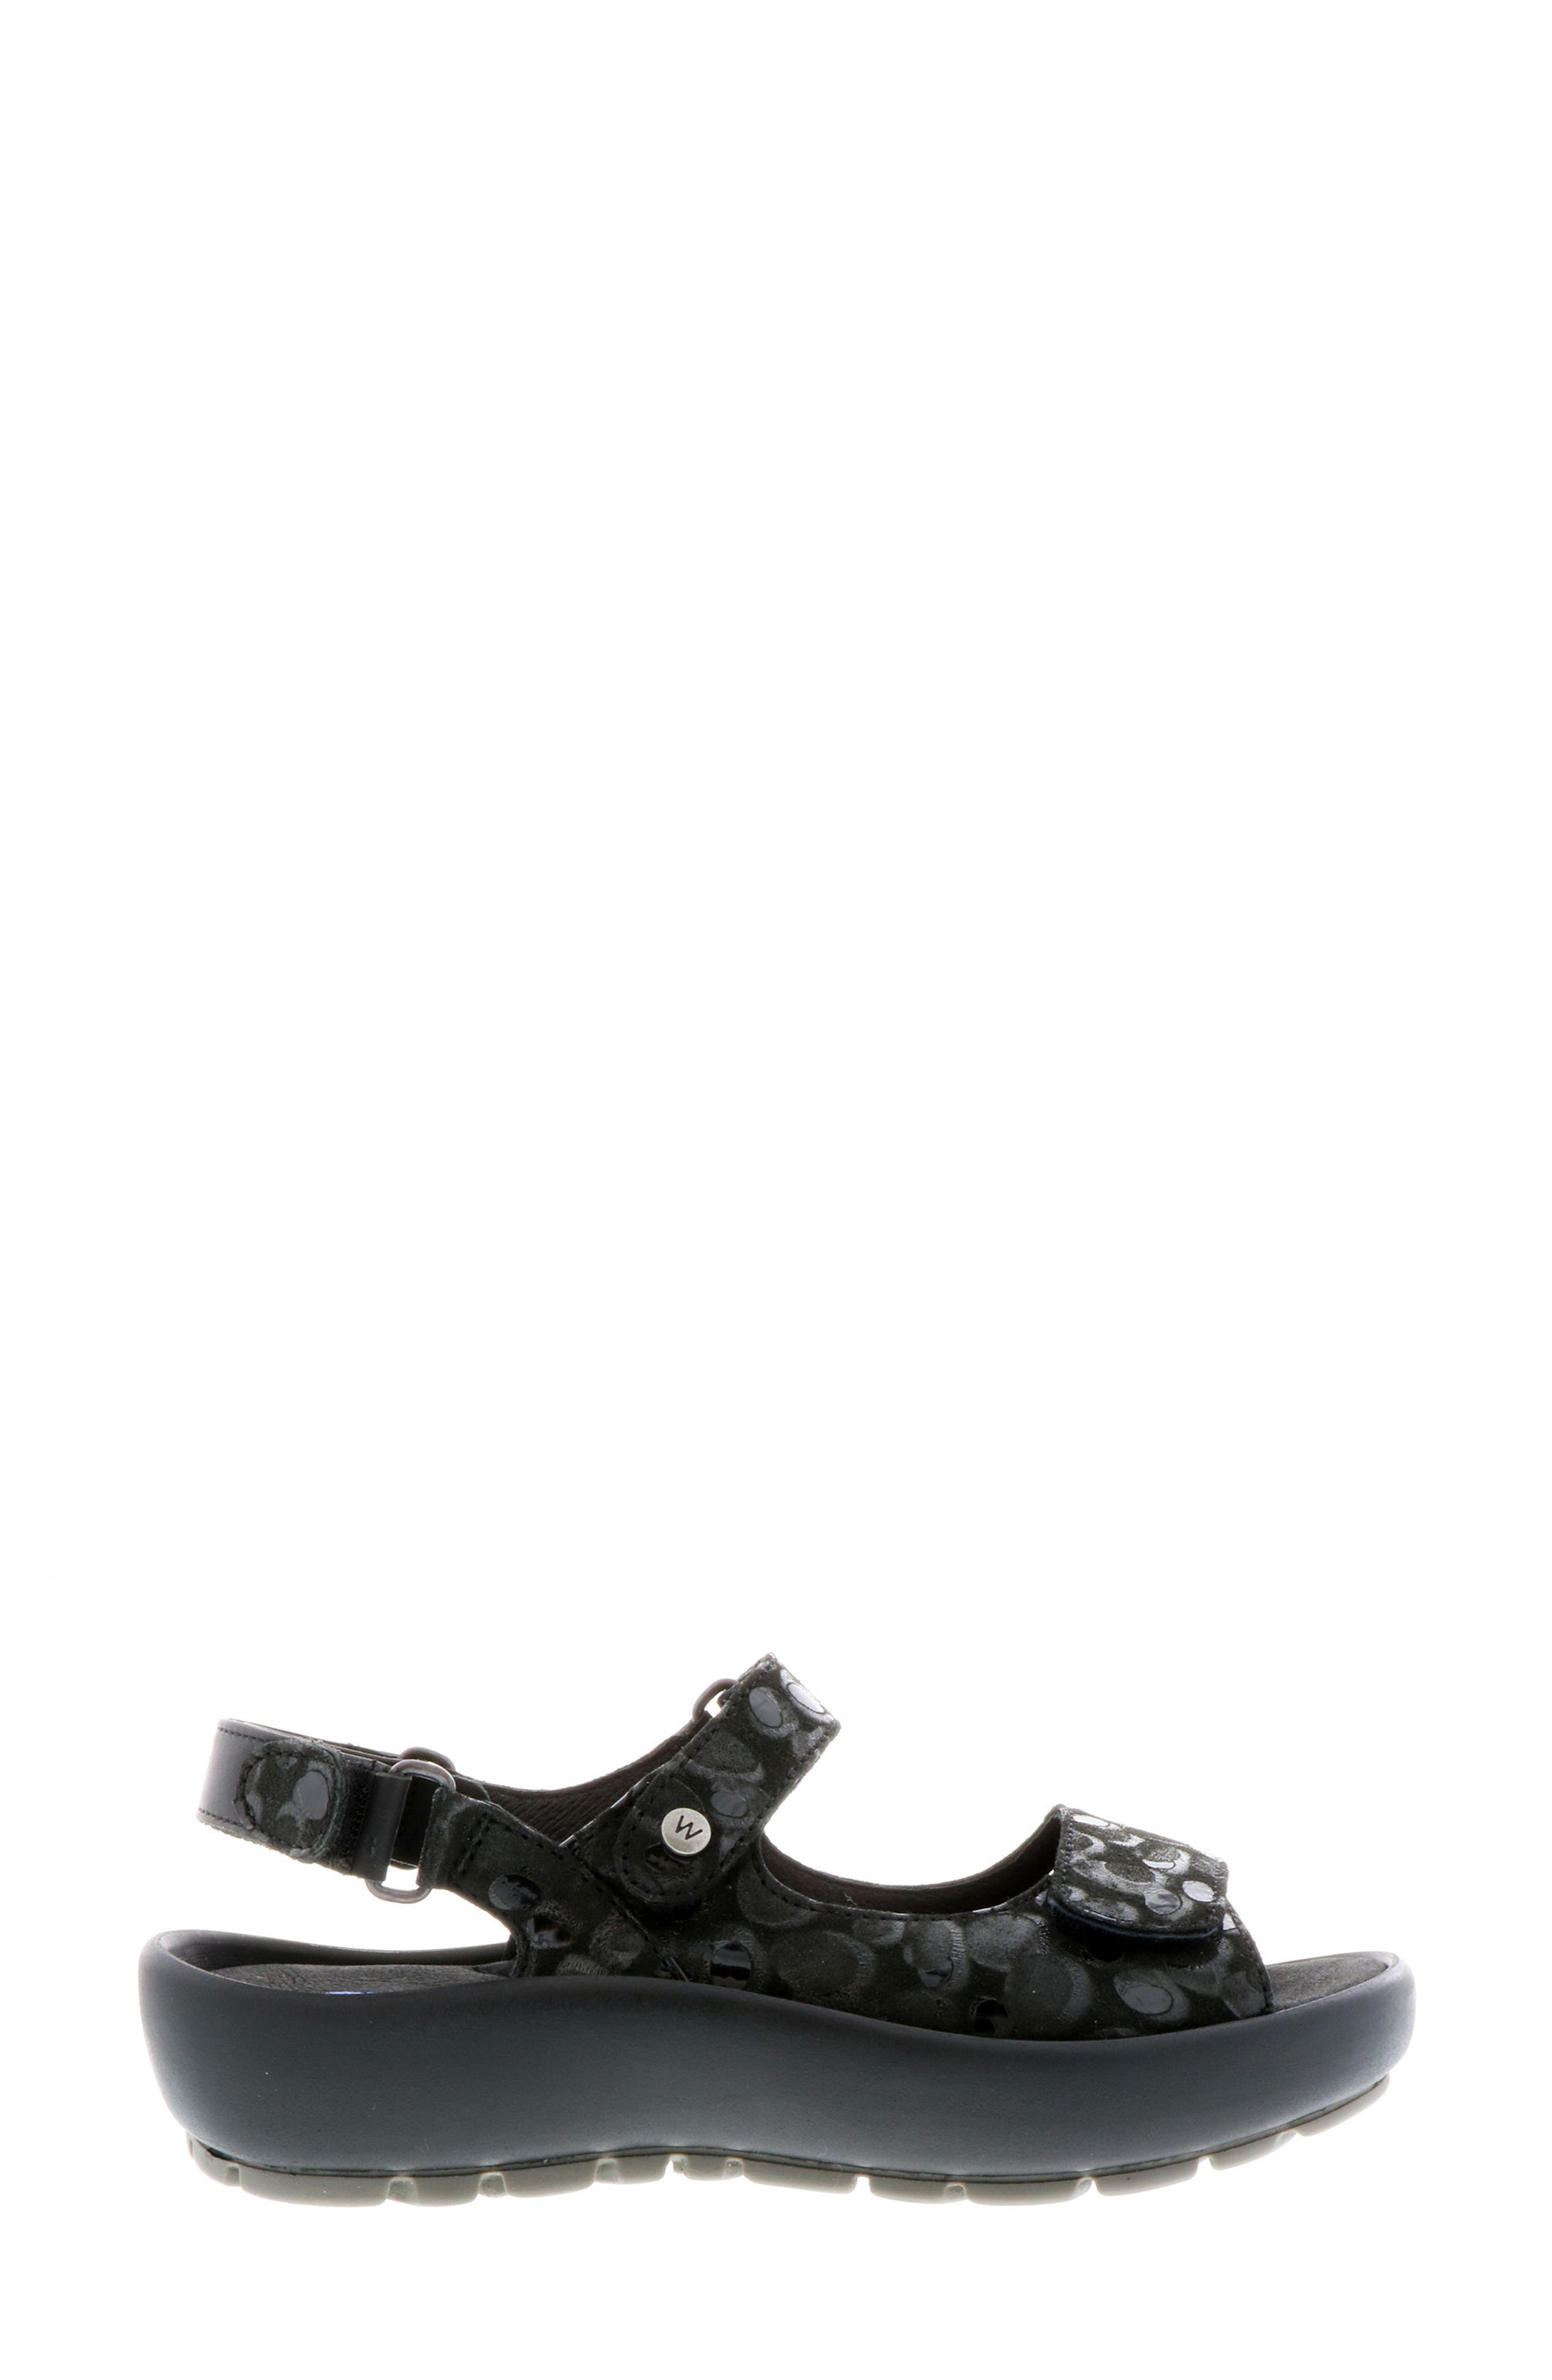 Rio Sandal,                             Alternate thumbnail 3, color,                             BLACK CIRCLE PRINT